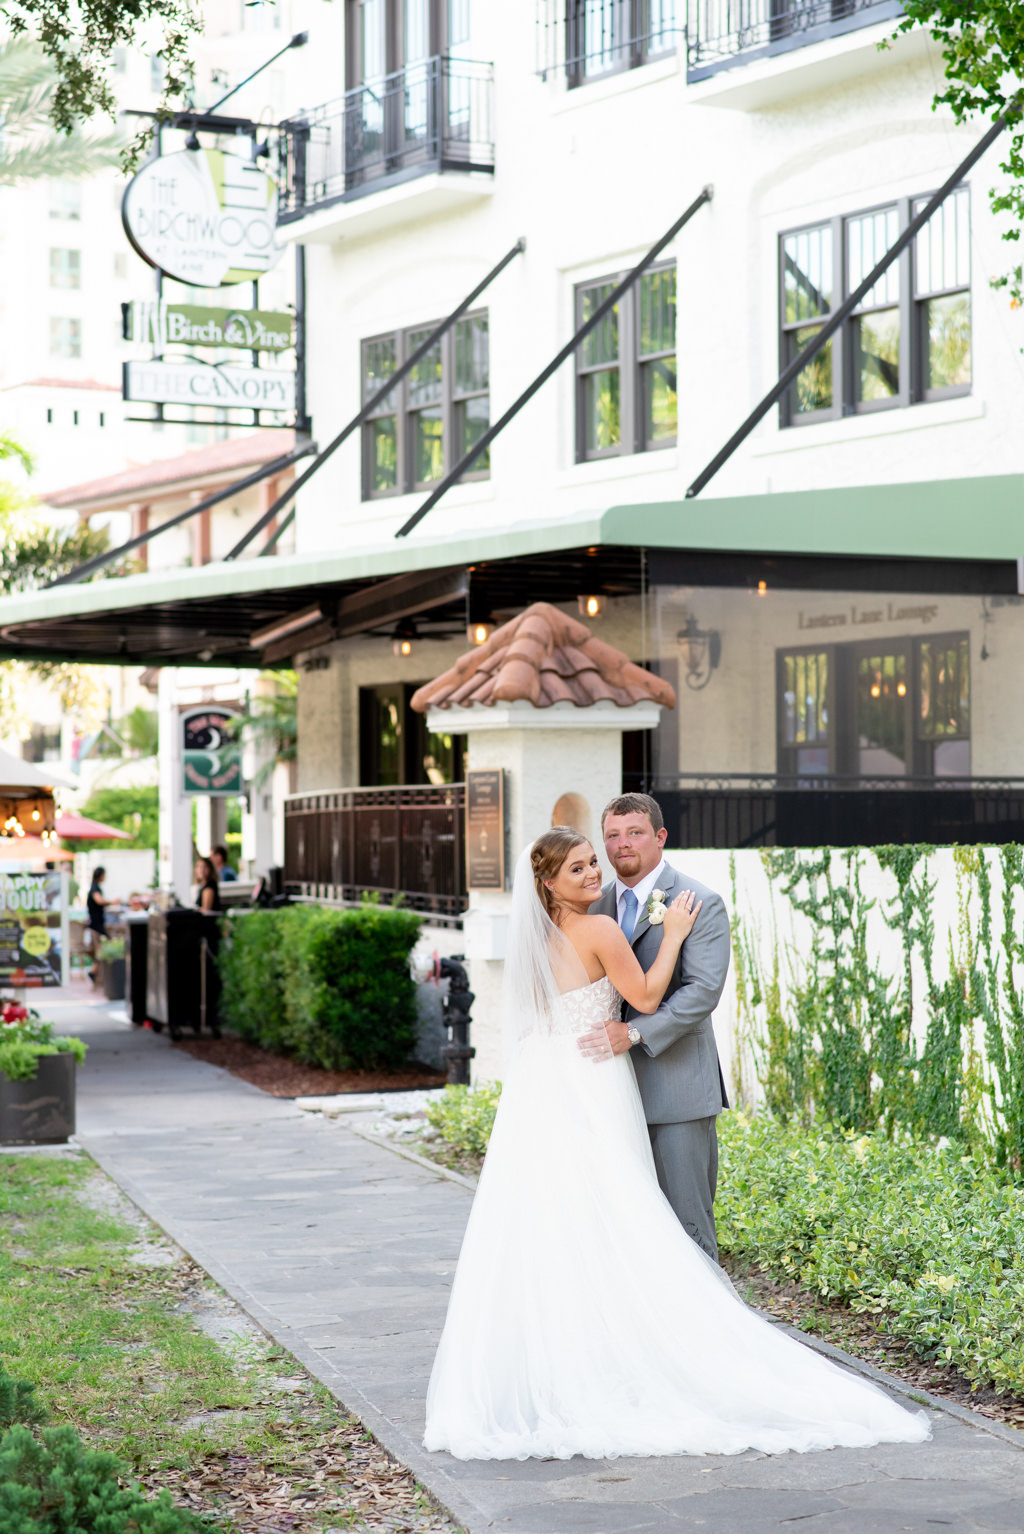 Florida Bride and Groom Outside Downtown St. Pete Modern Hotel and Wedding Venue The Birchwood